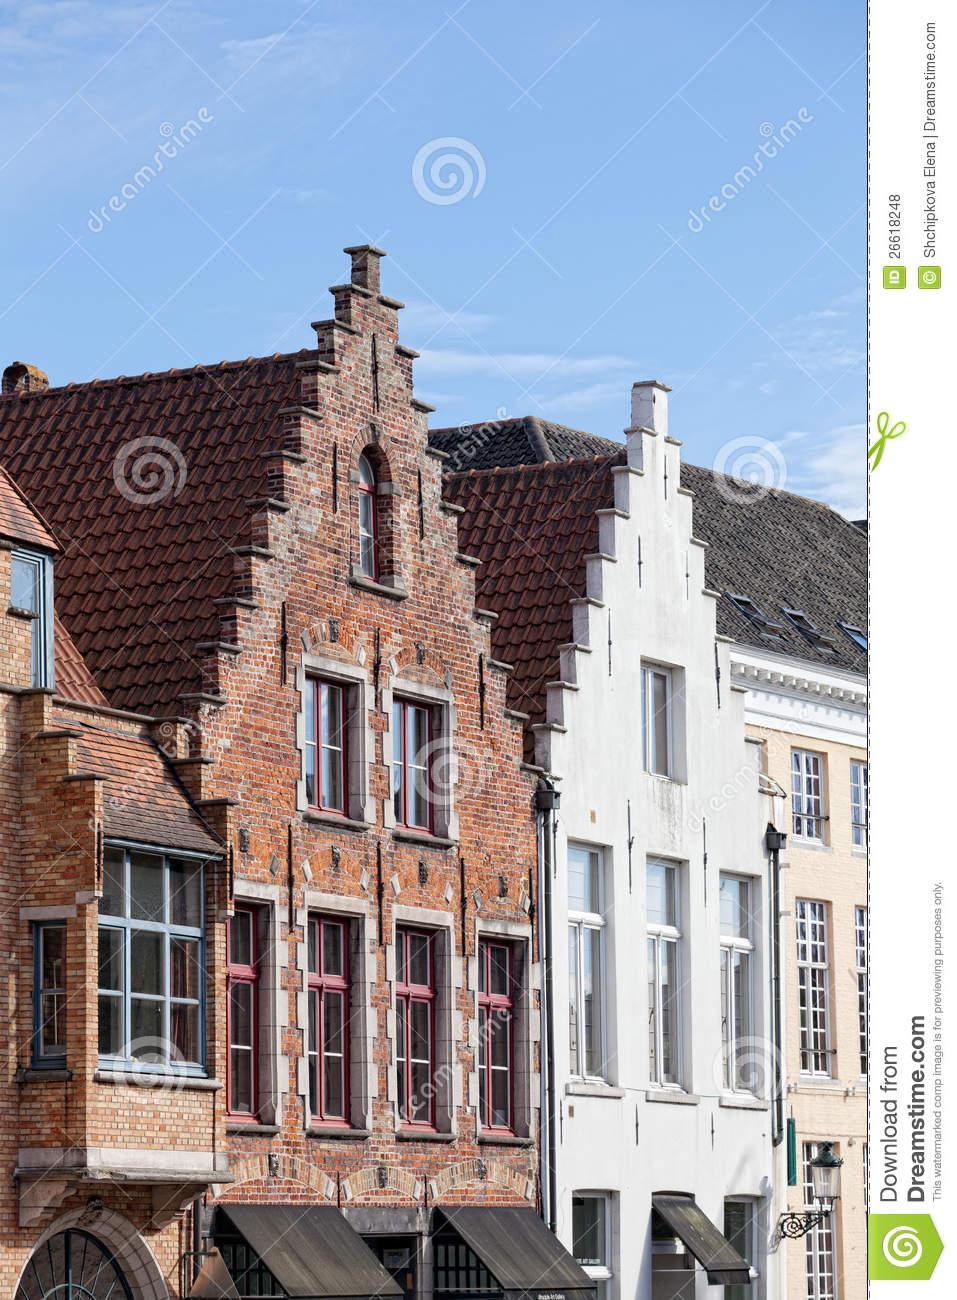 Bruges belgium royalty free stock photos image 26618248 - Small belgian houses brick ...